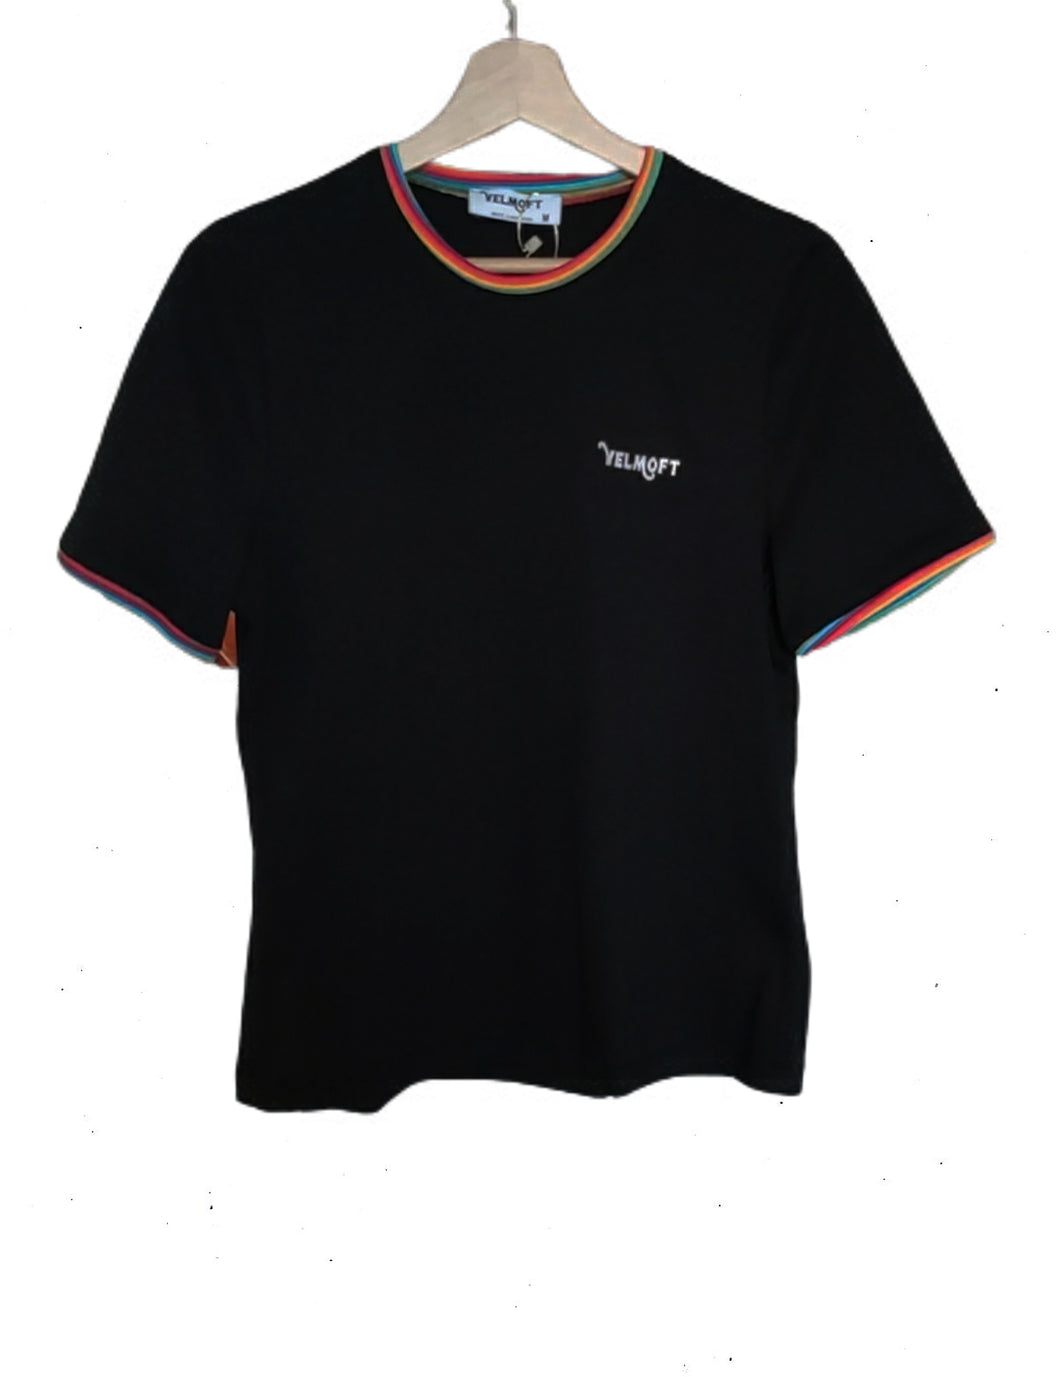 Woman's Black T-shirt with embroidered logo - Velmoft